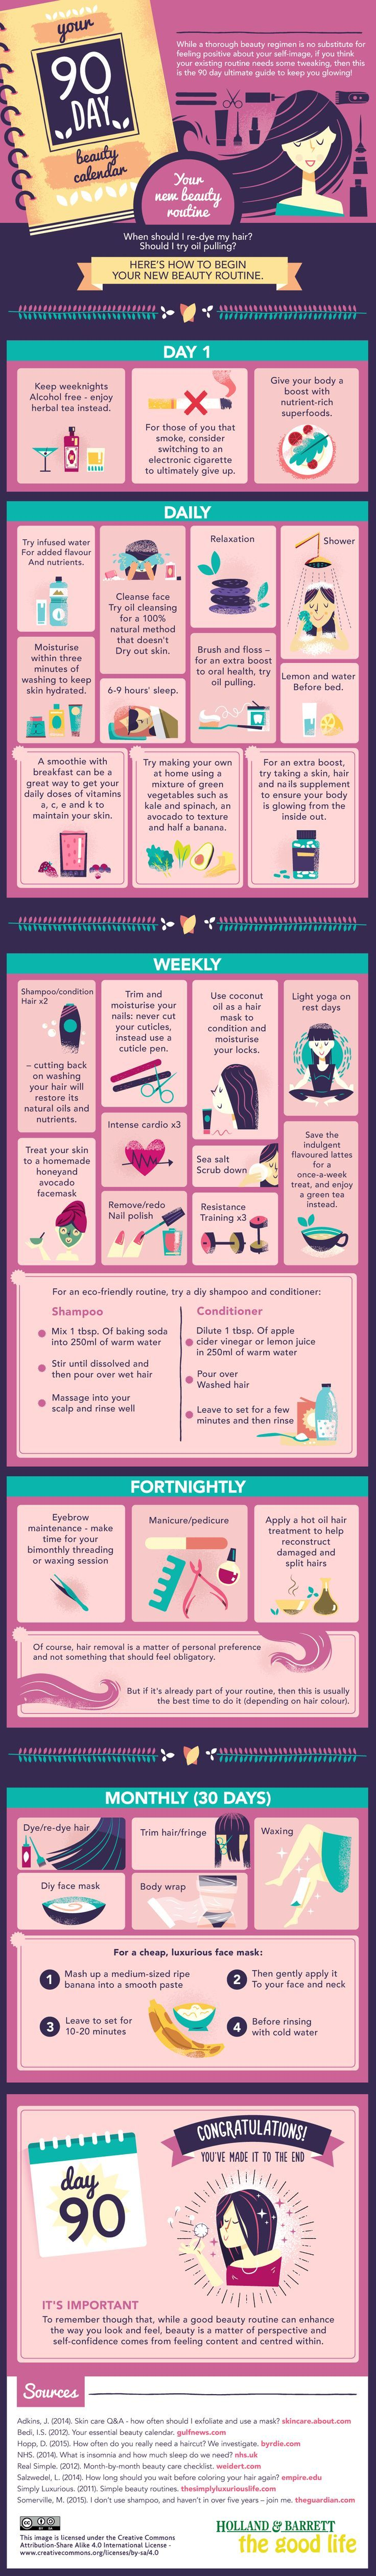 Beauty // Holland and Barrett present a 90-day schedule to make sure you remain at your beautiful best in a completely healthy way—all in a wonderful infographic.